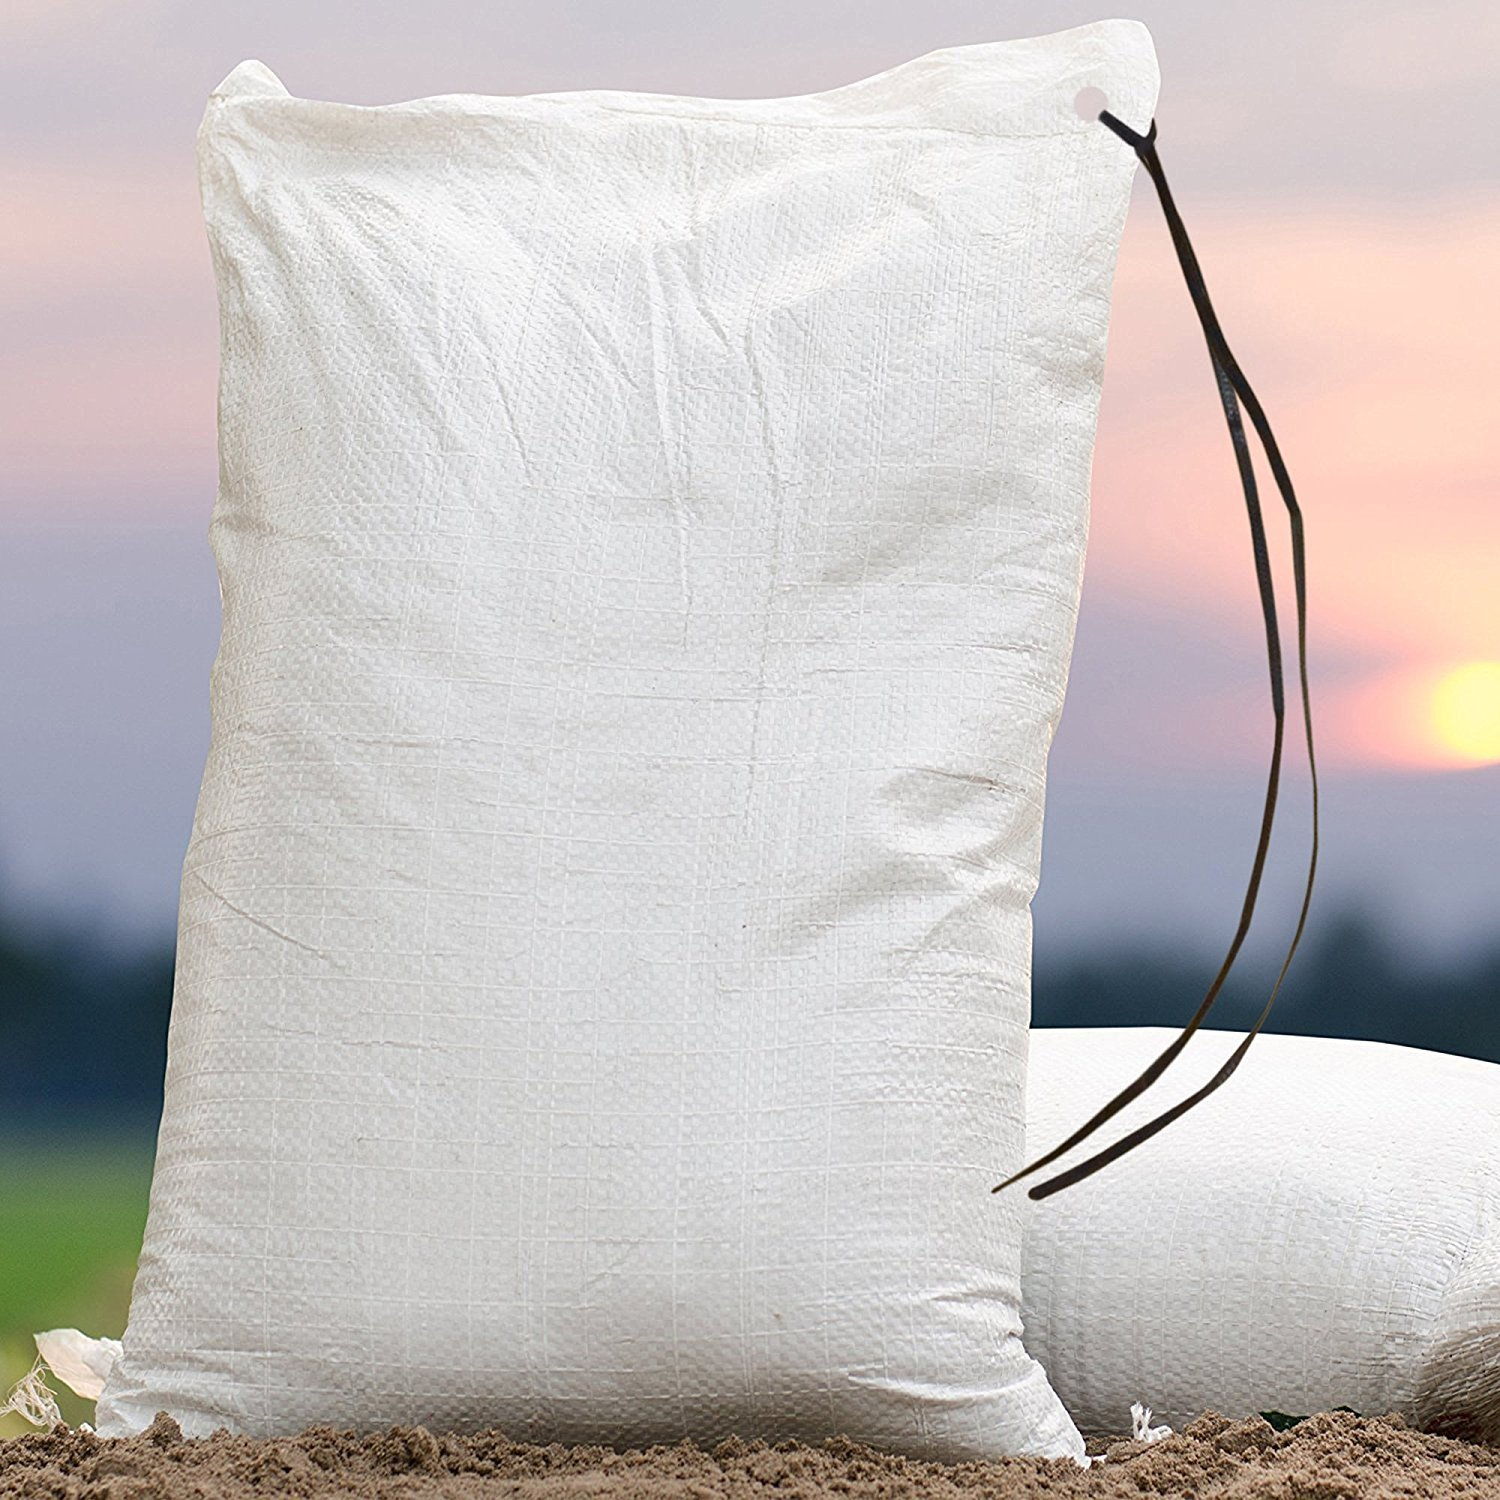 TOTALPACK -14'' x 26'' - Military-Strength Sandbags, Waterproof Polypropylene Tightly-Woven Sand Bags, Tear-Resistant Bags With Ties, Maximum UVI Protection, USA-Made Bags For Barriers, (100) White Ba